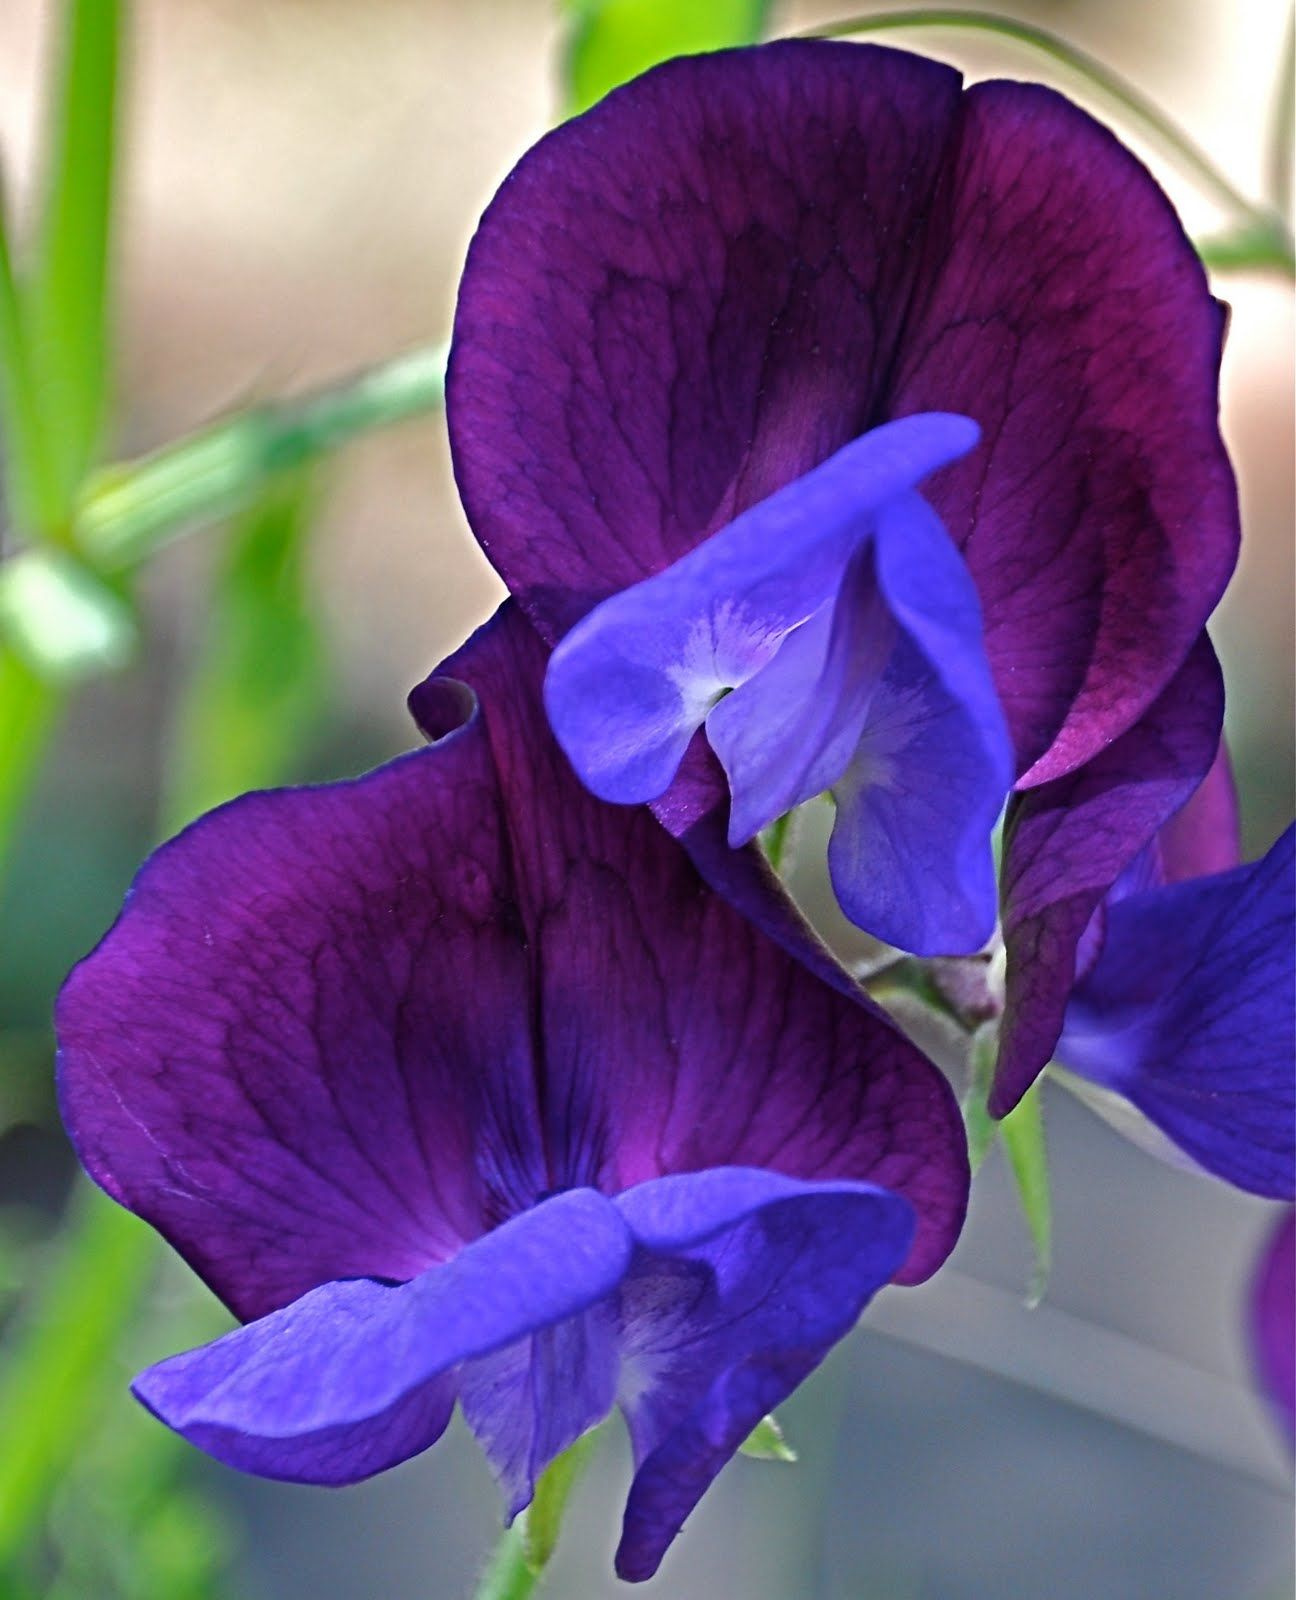 Brian howlett photography sweet pea blue and purple flowers i brian howlett photography sweet pea blue and purple izmirmasajfo